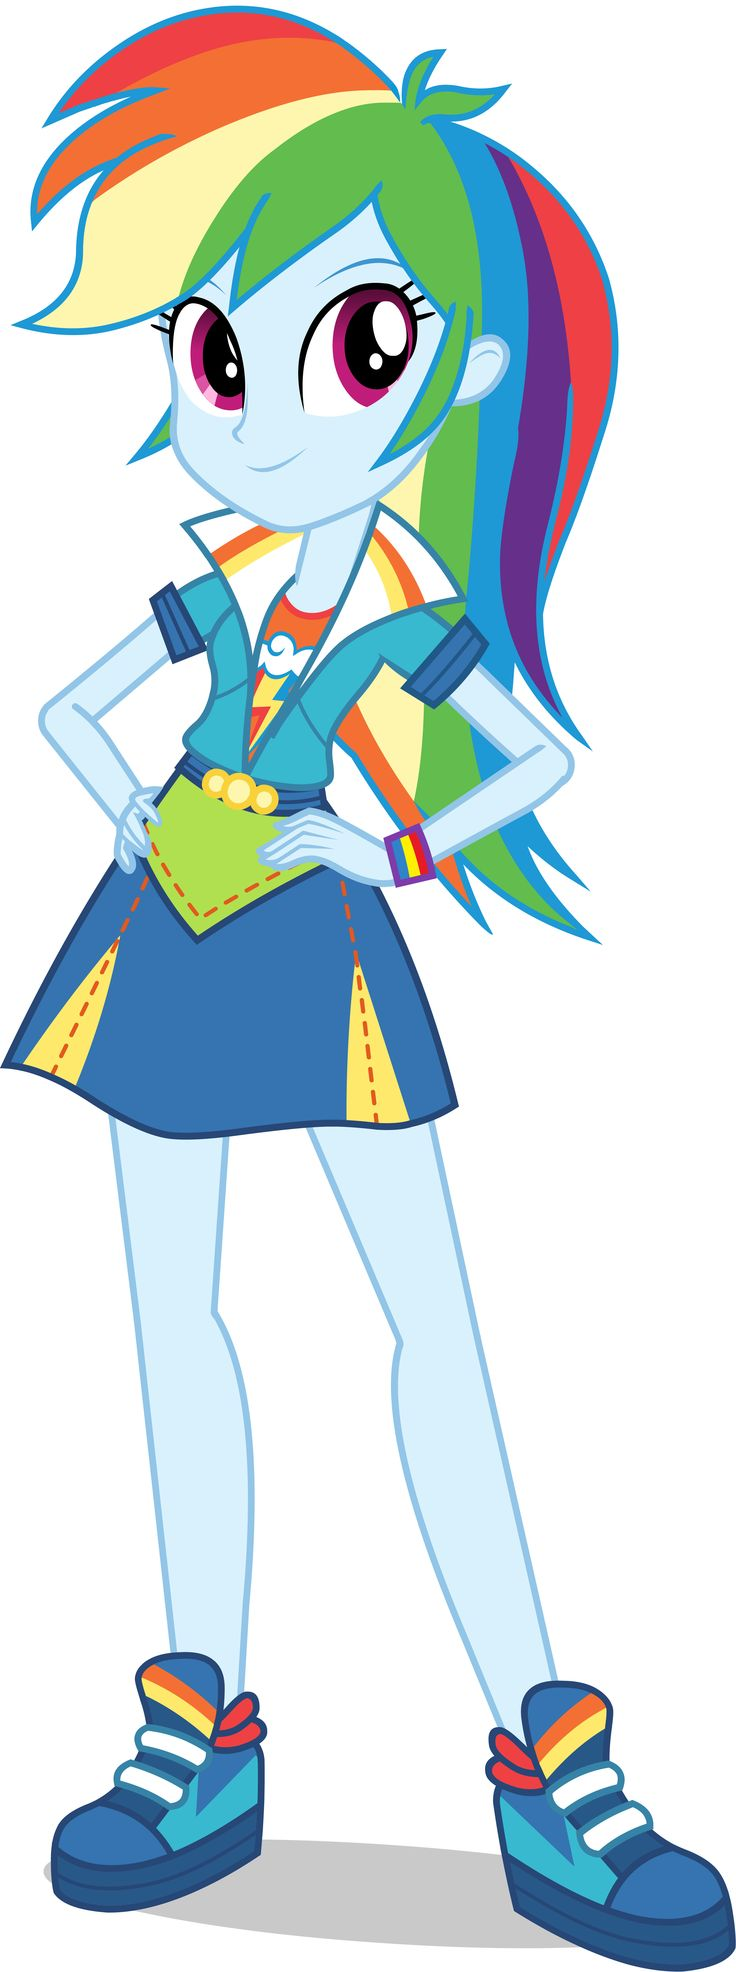 "Rainbow Dash in ""Equestria Girls Friendship Games."" In the new EG film, Canterlot High meets its rival school, Crystal Prep Academy, in a competition that's a long-standing tradition — the Friendship Games. Sunset Shimmer is tasked with keeping magic out of the games to avoid the appearance of impropriety while she and her friends compete against Crystal Prep's top students led by someone with an equal amount of interest in Equestrian magic — this world's TWILIGHT SPARKLE! #MLP…"